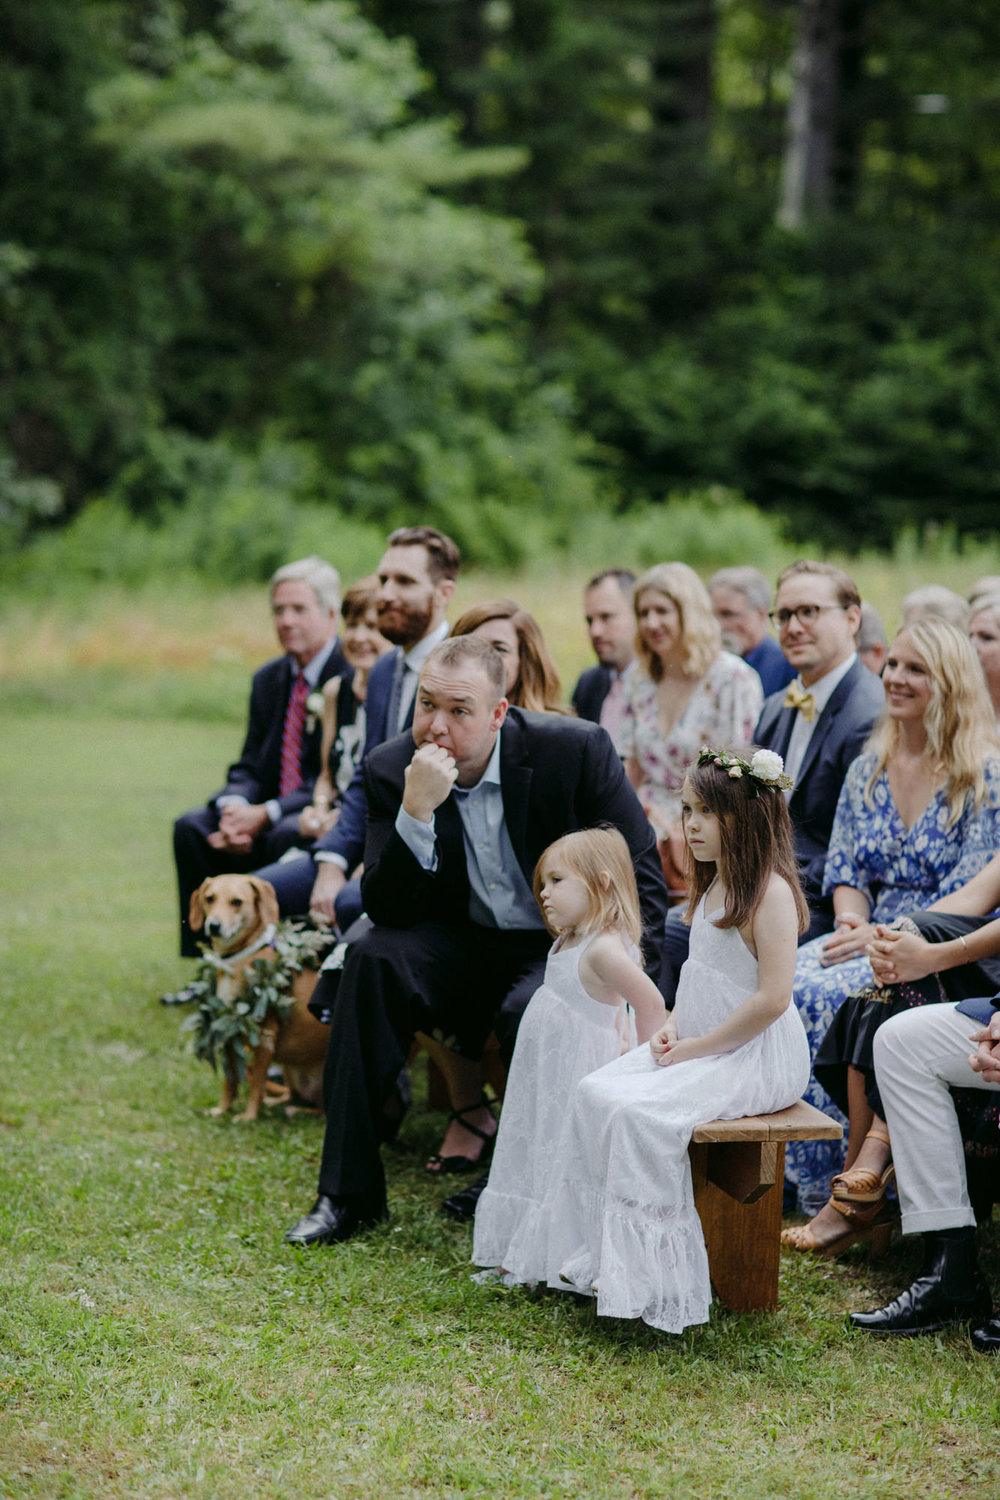 FOXFIREMOUNTAINHOUSE_CATSKILLS_WEDDING_SAMMBLAKE_PJW_0298.jpg